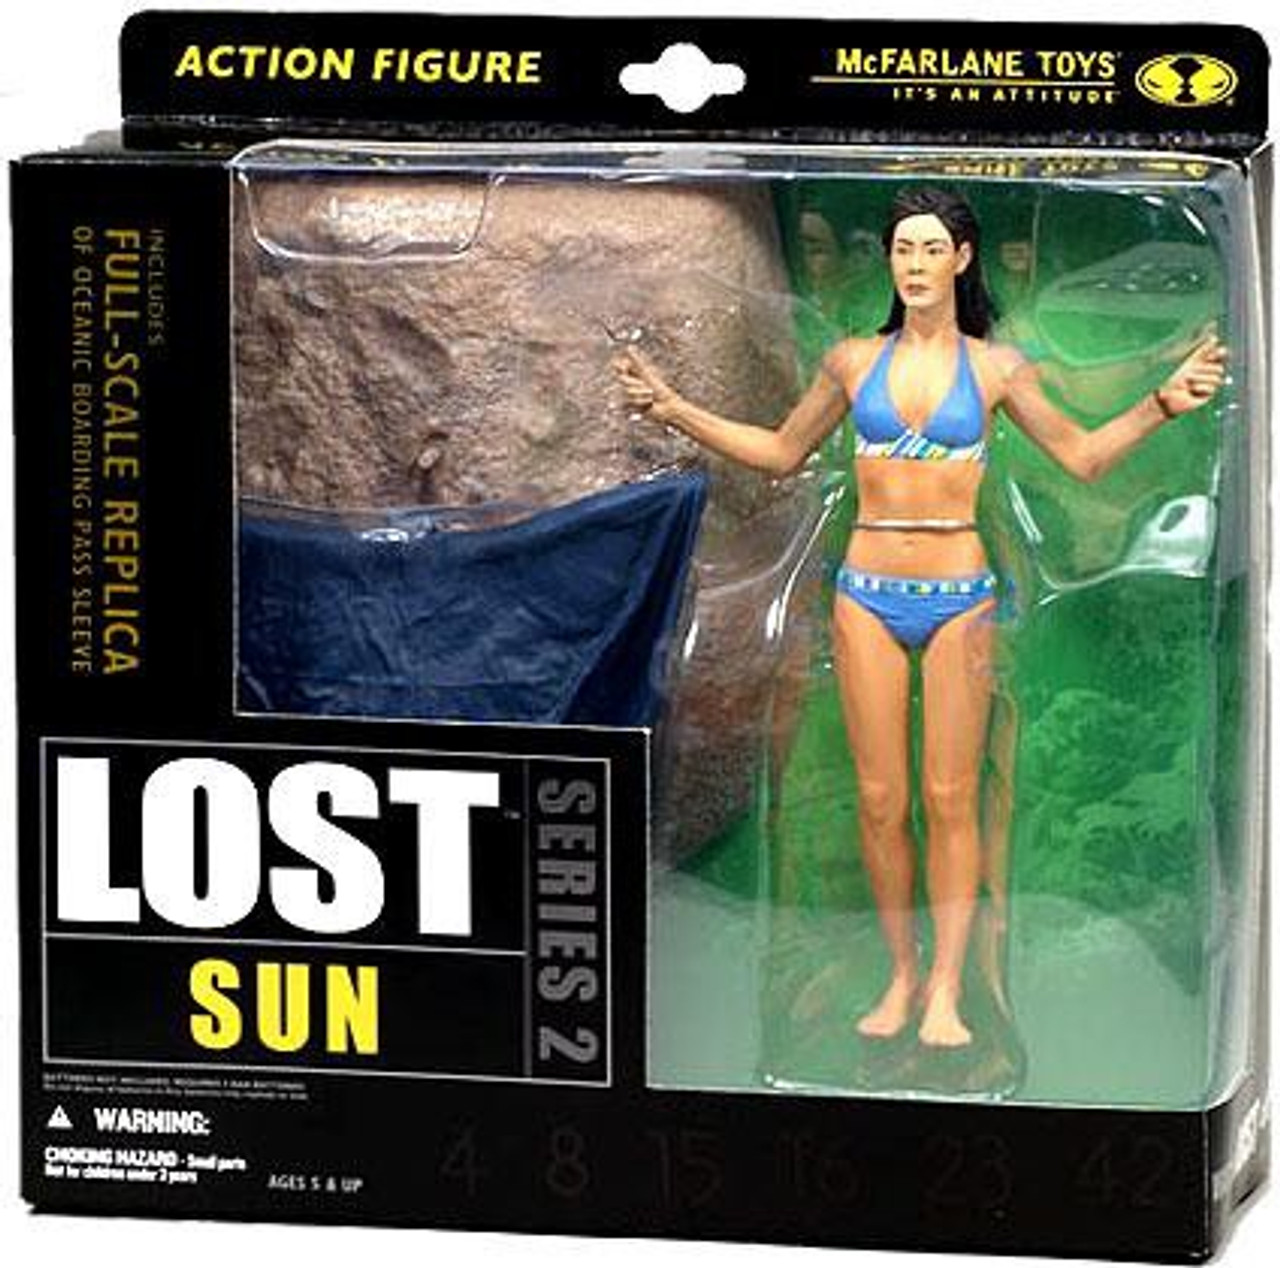 McFarlane Toys Lost Series 2 Sun Action Figure